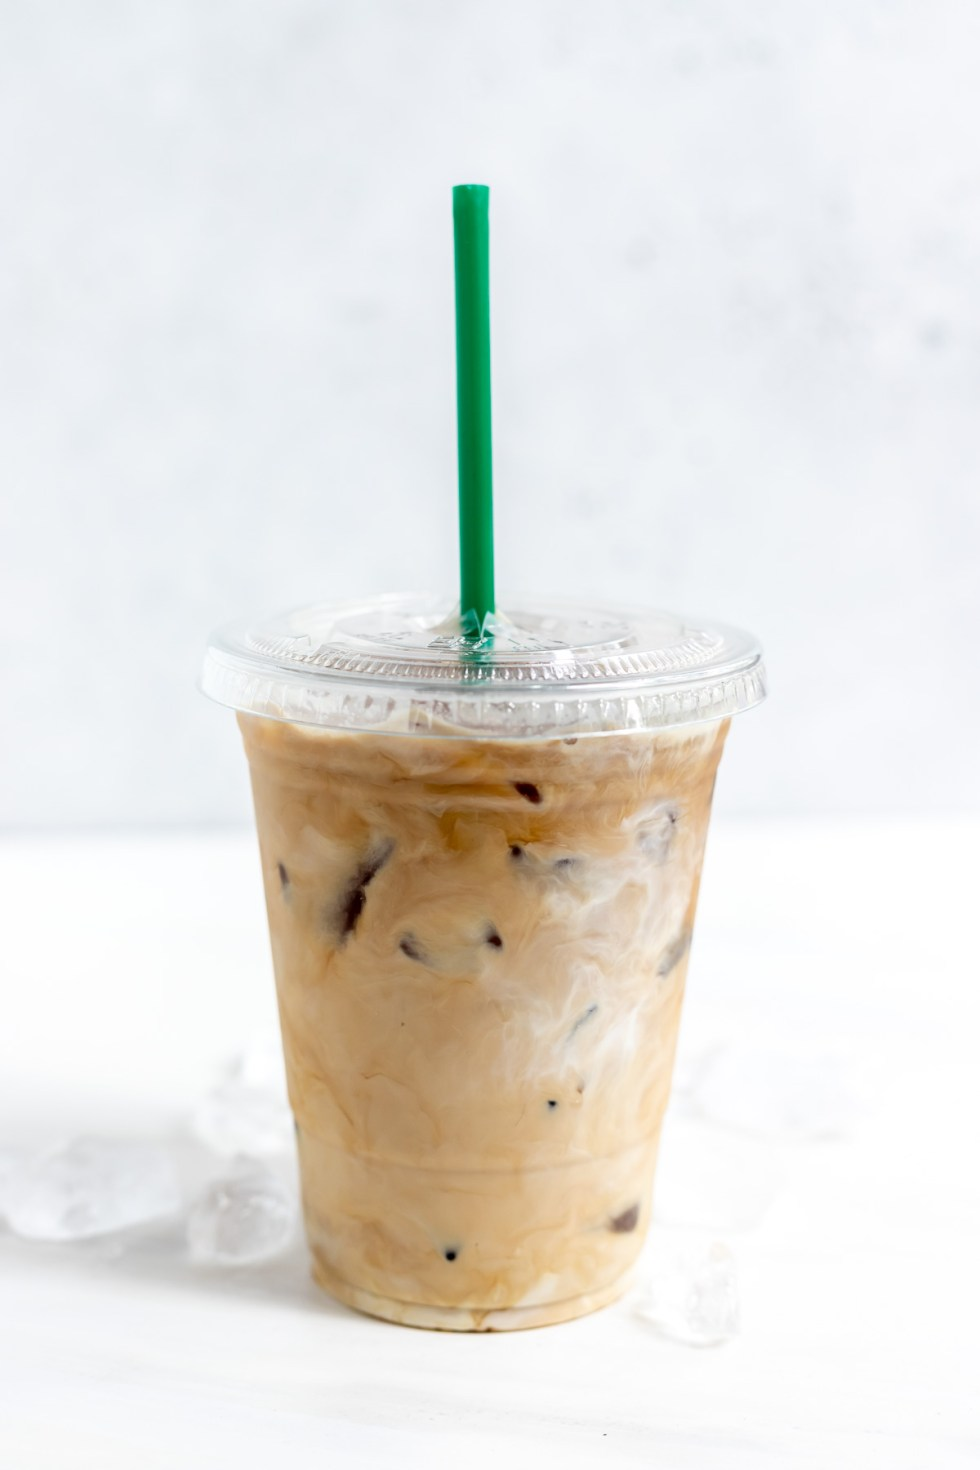 clear plastic cup filled with creamy coffee